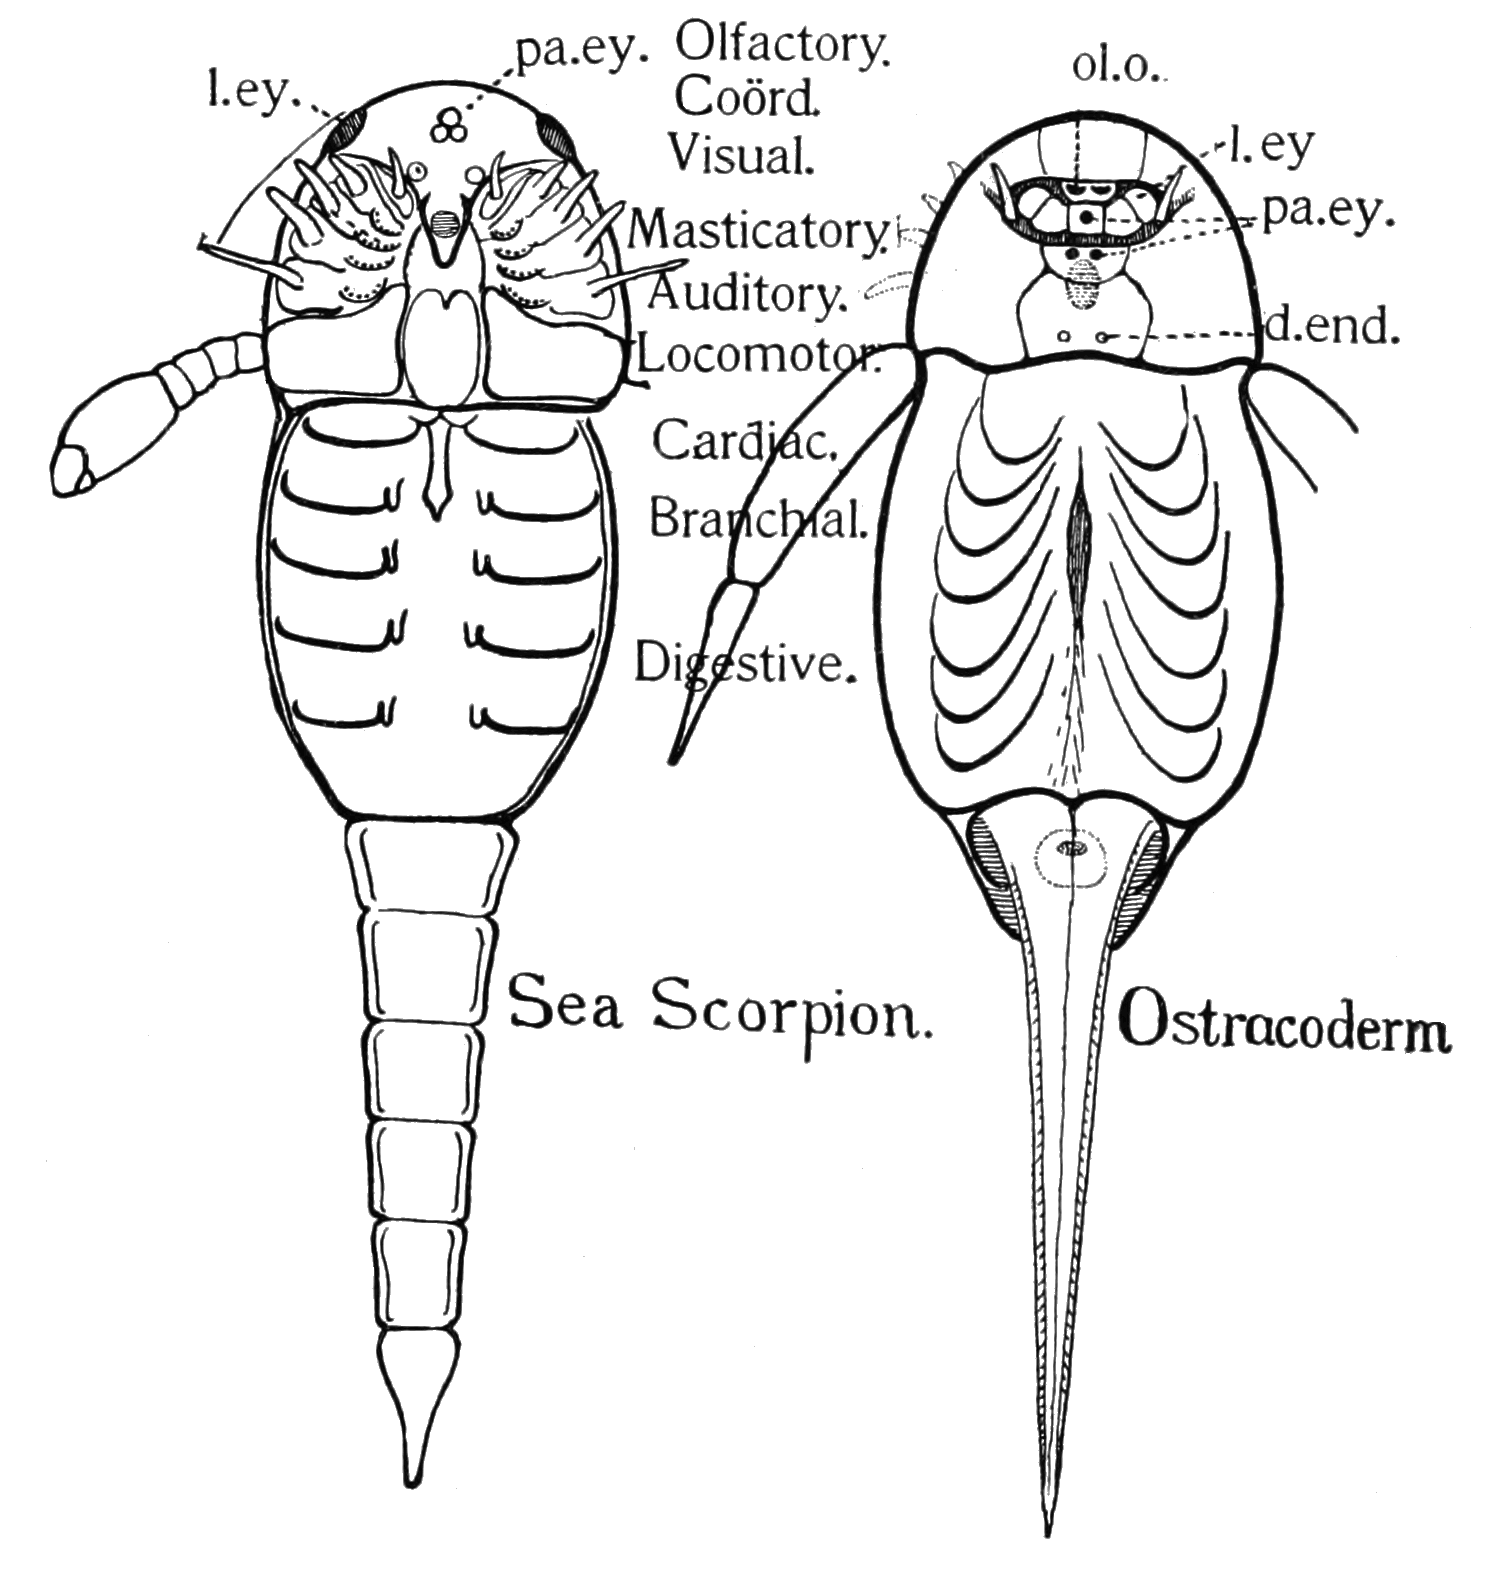 hight resolution of file psm v82 d427 sea scorpion and an ostracoderm png